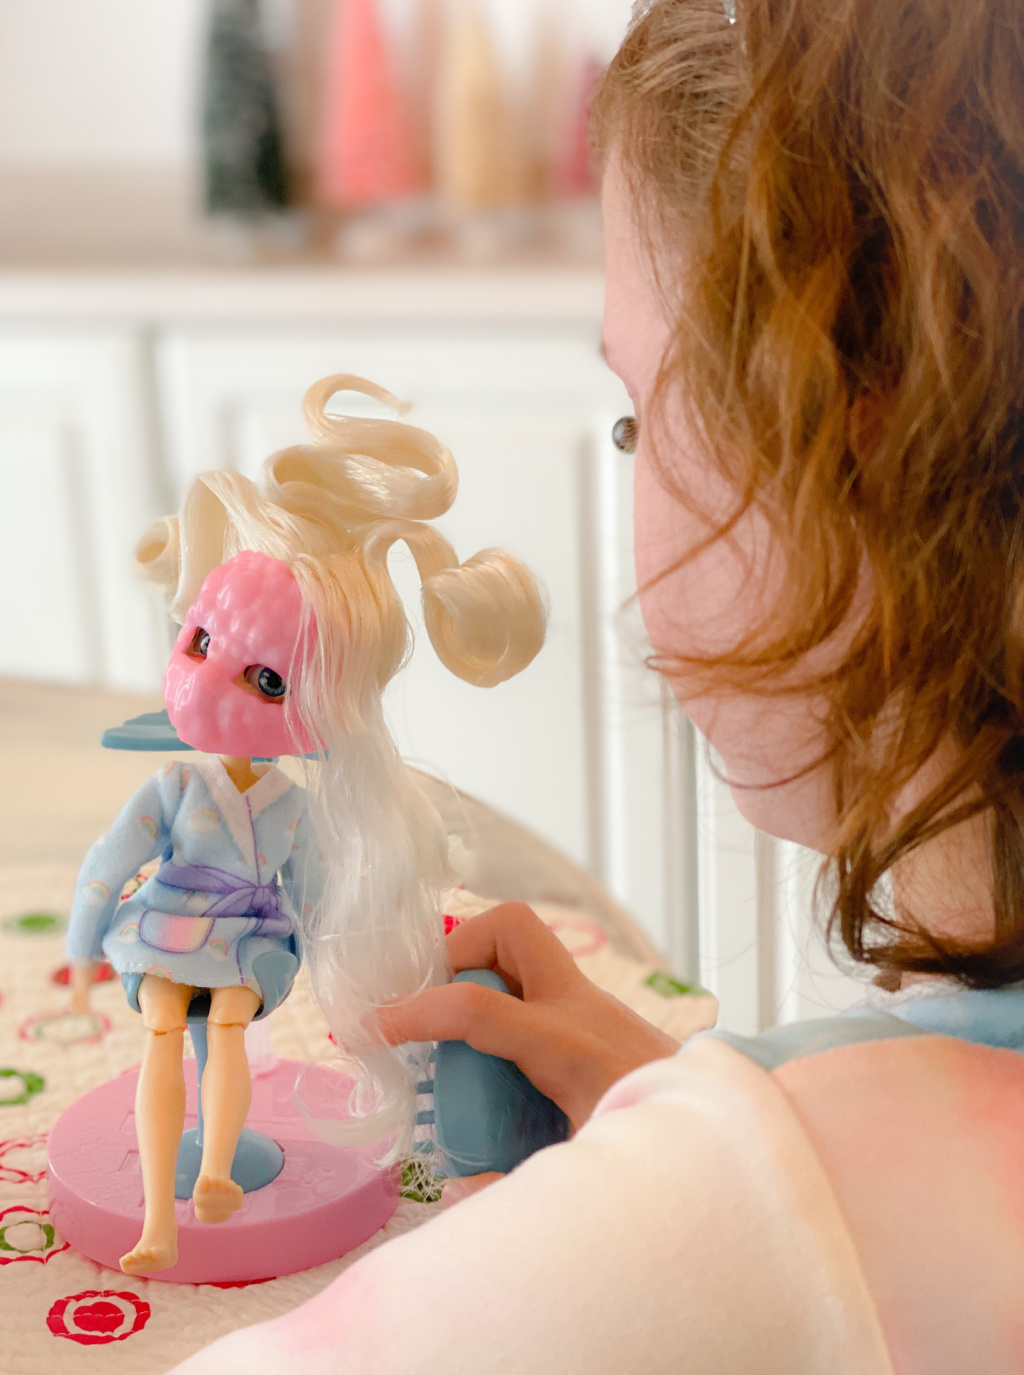 little girl with brown hair brushing blond doll with pink face mask